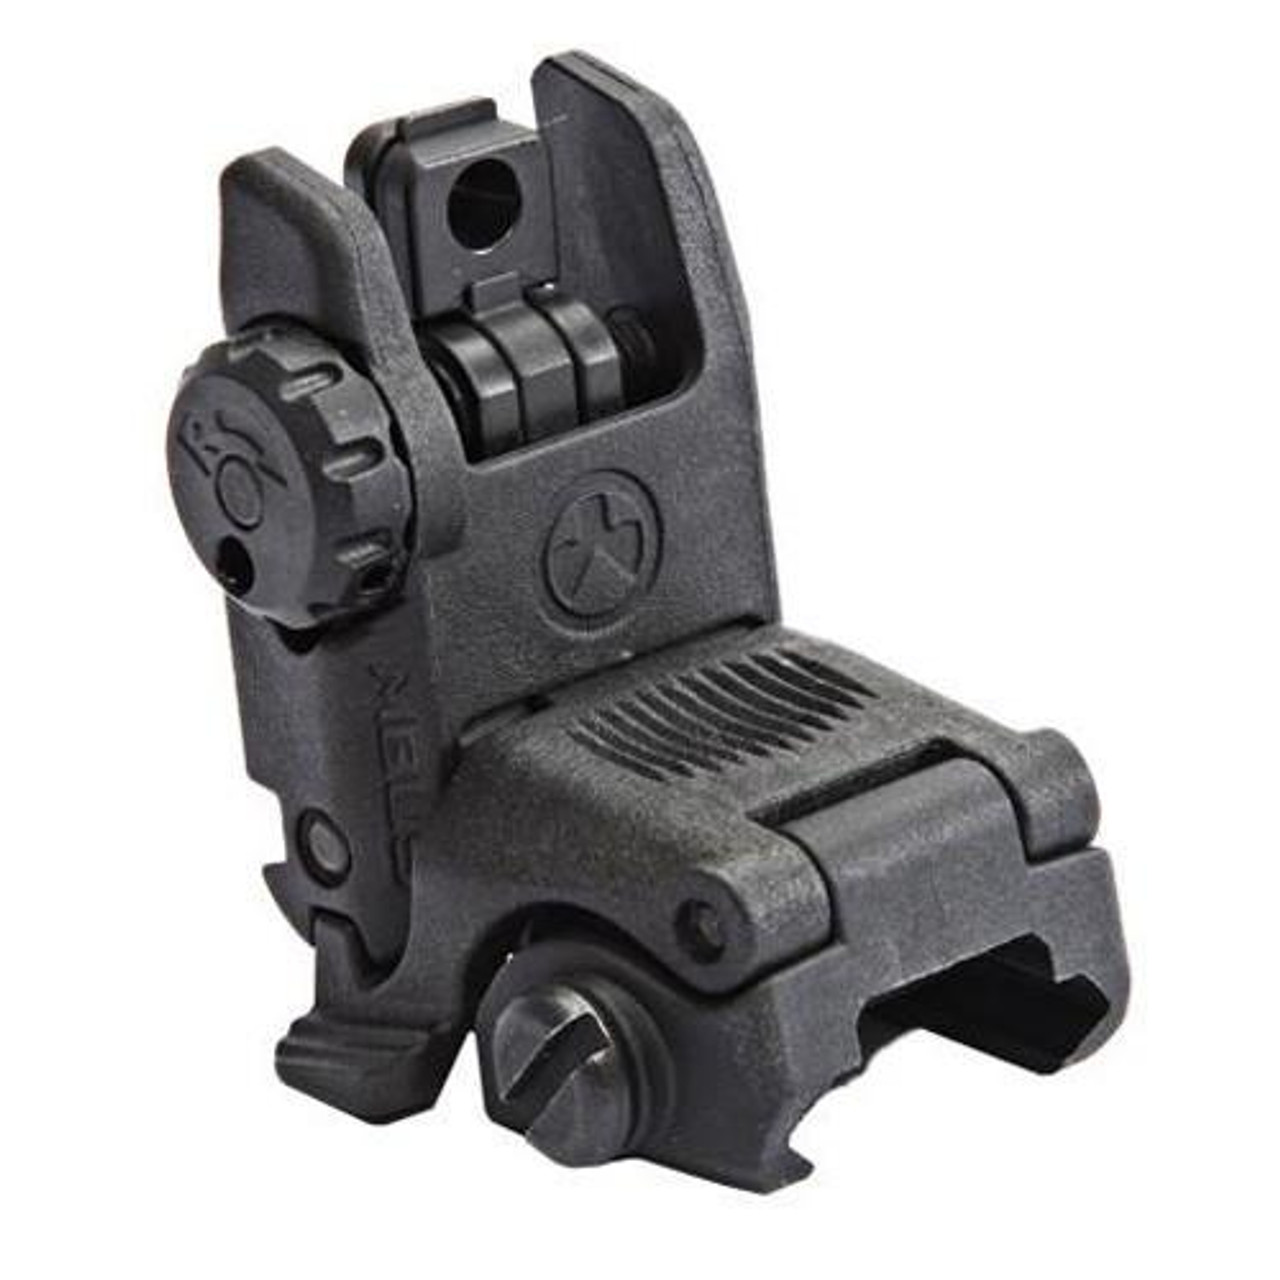 Magpul MBUS Rear Back up sight